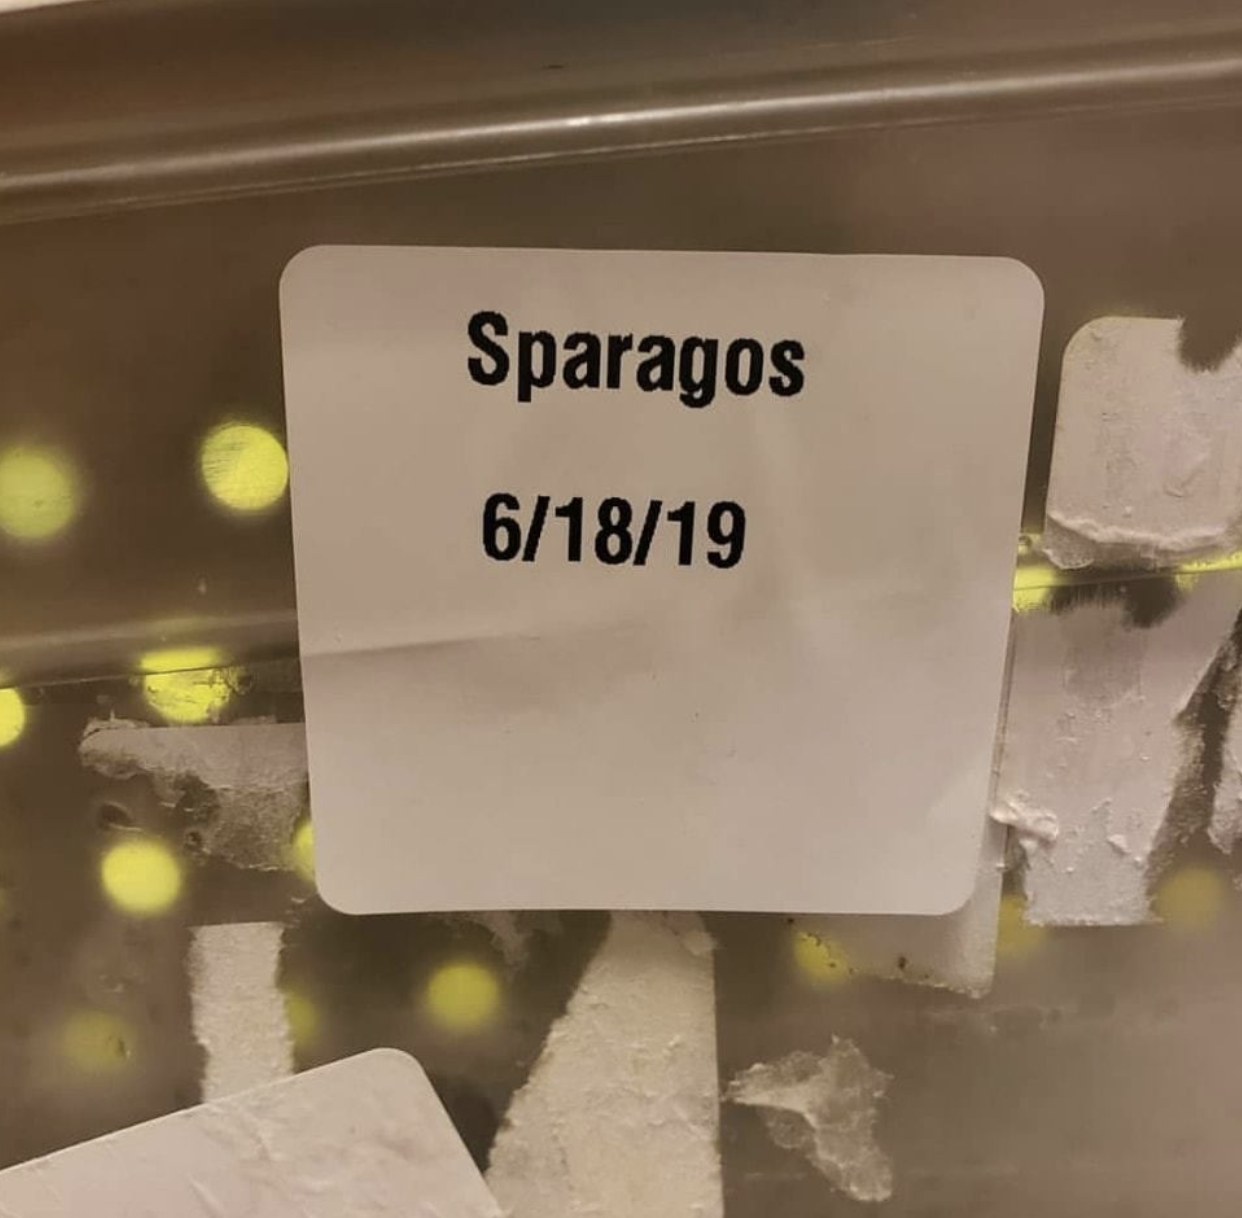 asparagus labeled sparagos